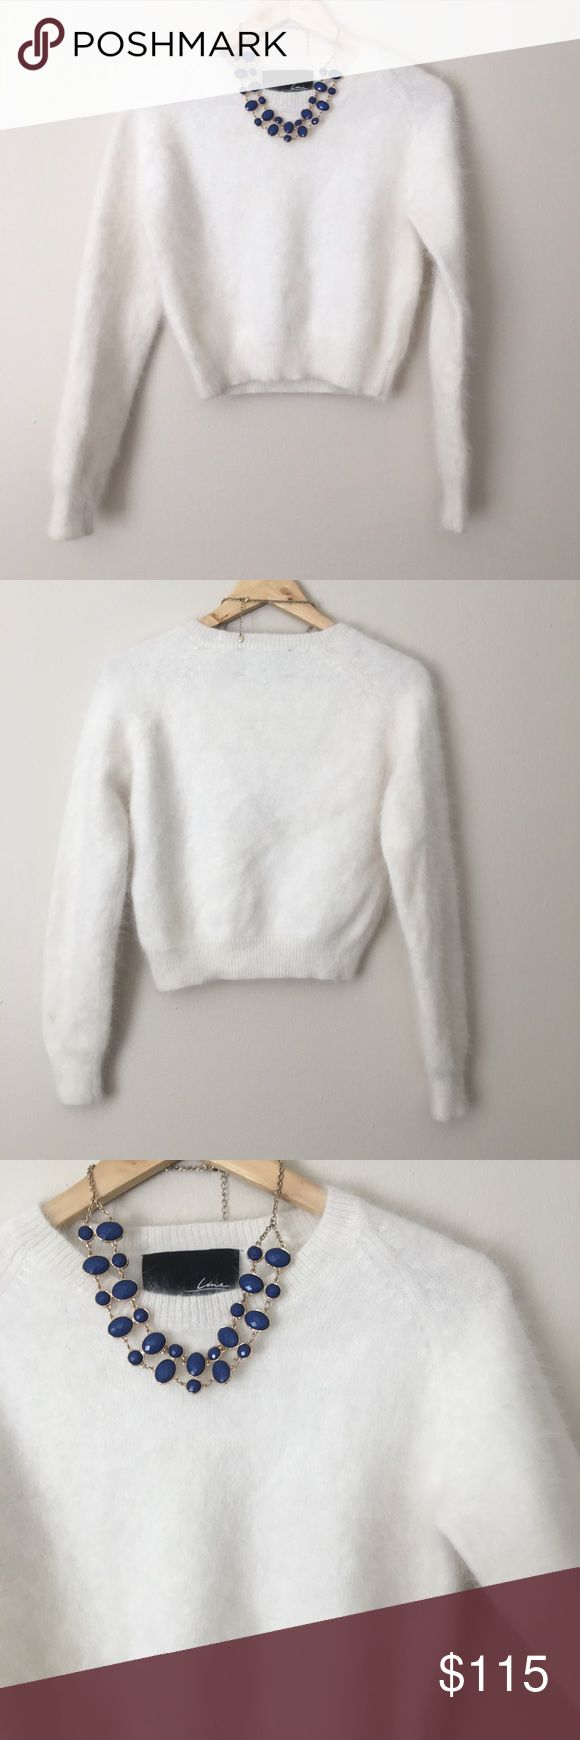 Soft angora sweater excellent condition one small mark last picture that is barely noticeable even in good lighting measurements lying flat 18 5 pit